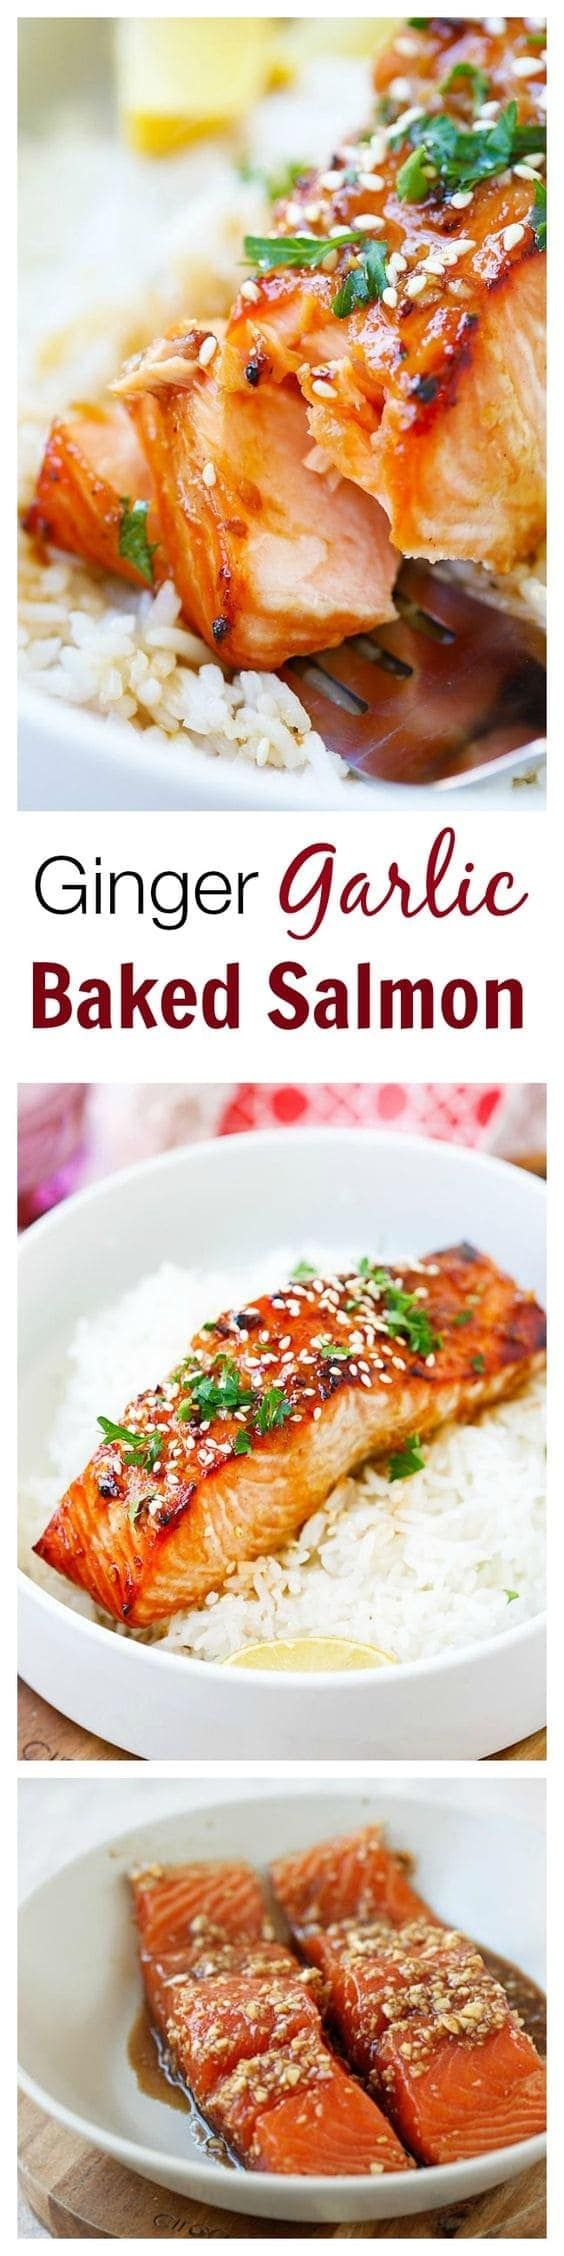 Ginger Garlic Baked Salmon – the best and easiest salmon recipe ever! Moist, flavorful, juicy, and takes only 10 mins to prep. So good you want seconds!!   rasamalaysia.com